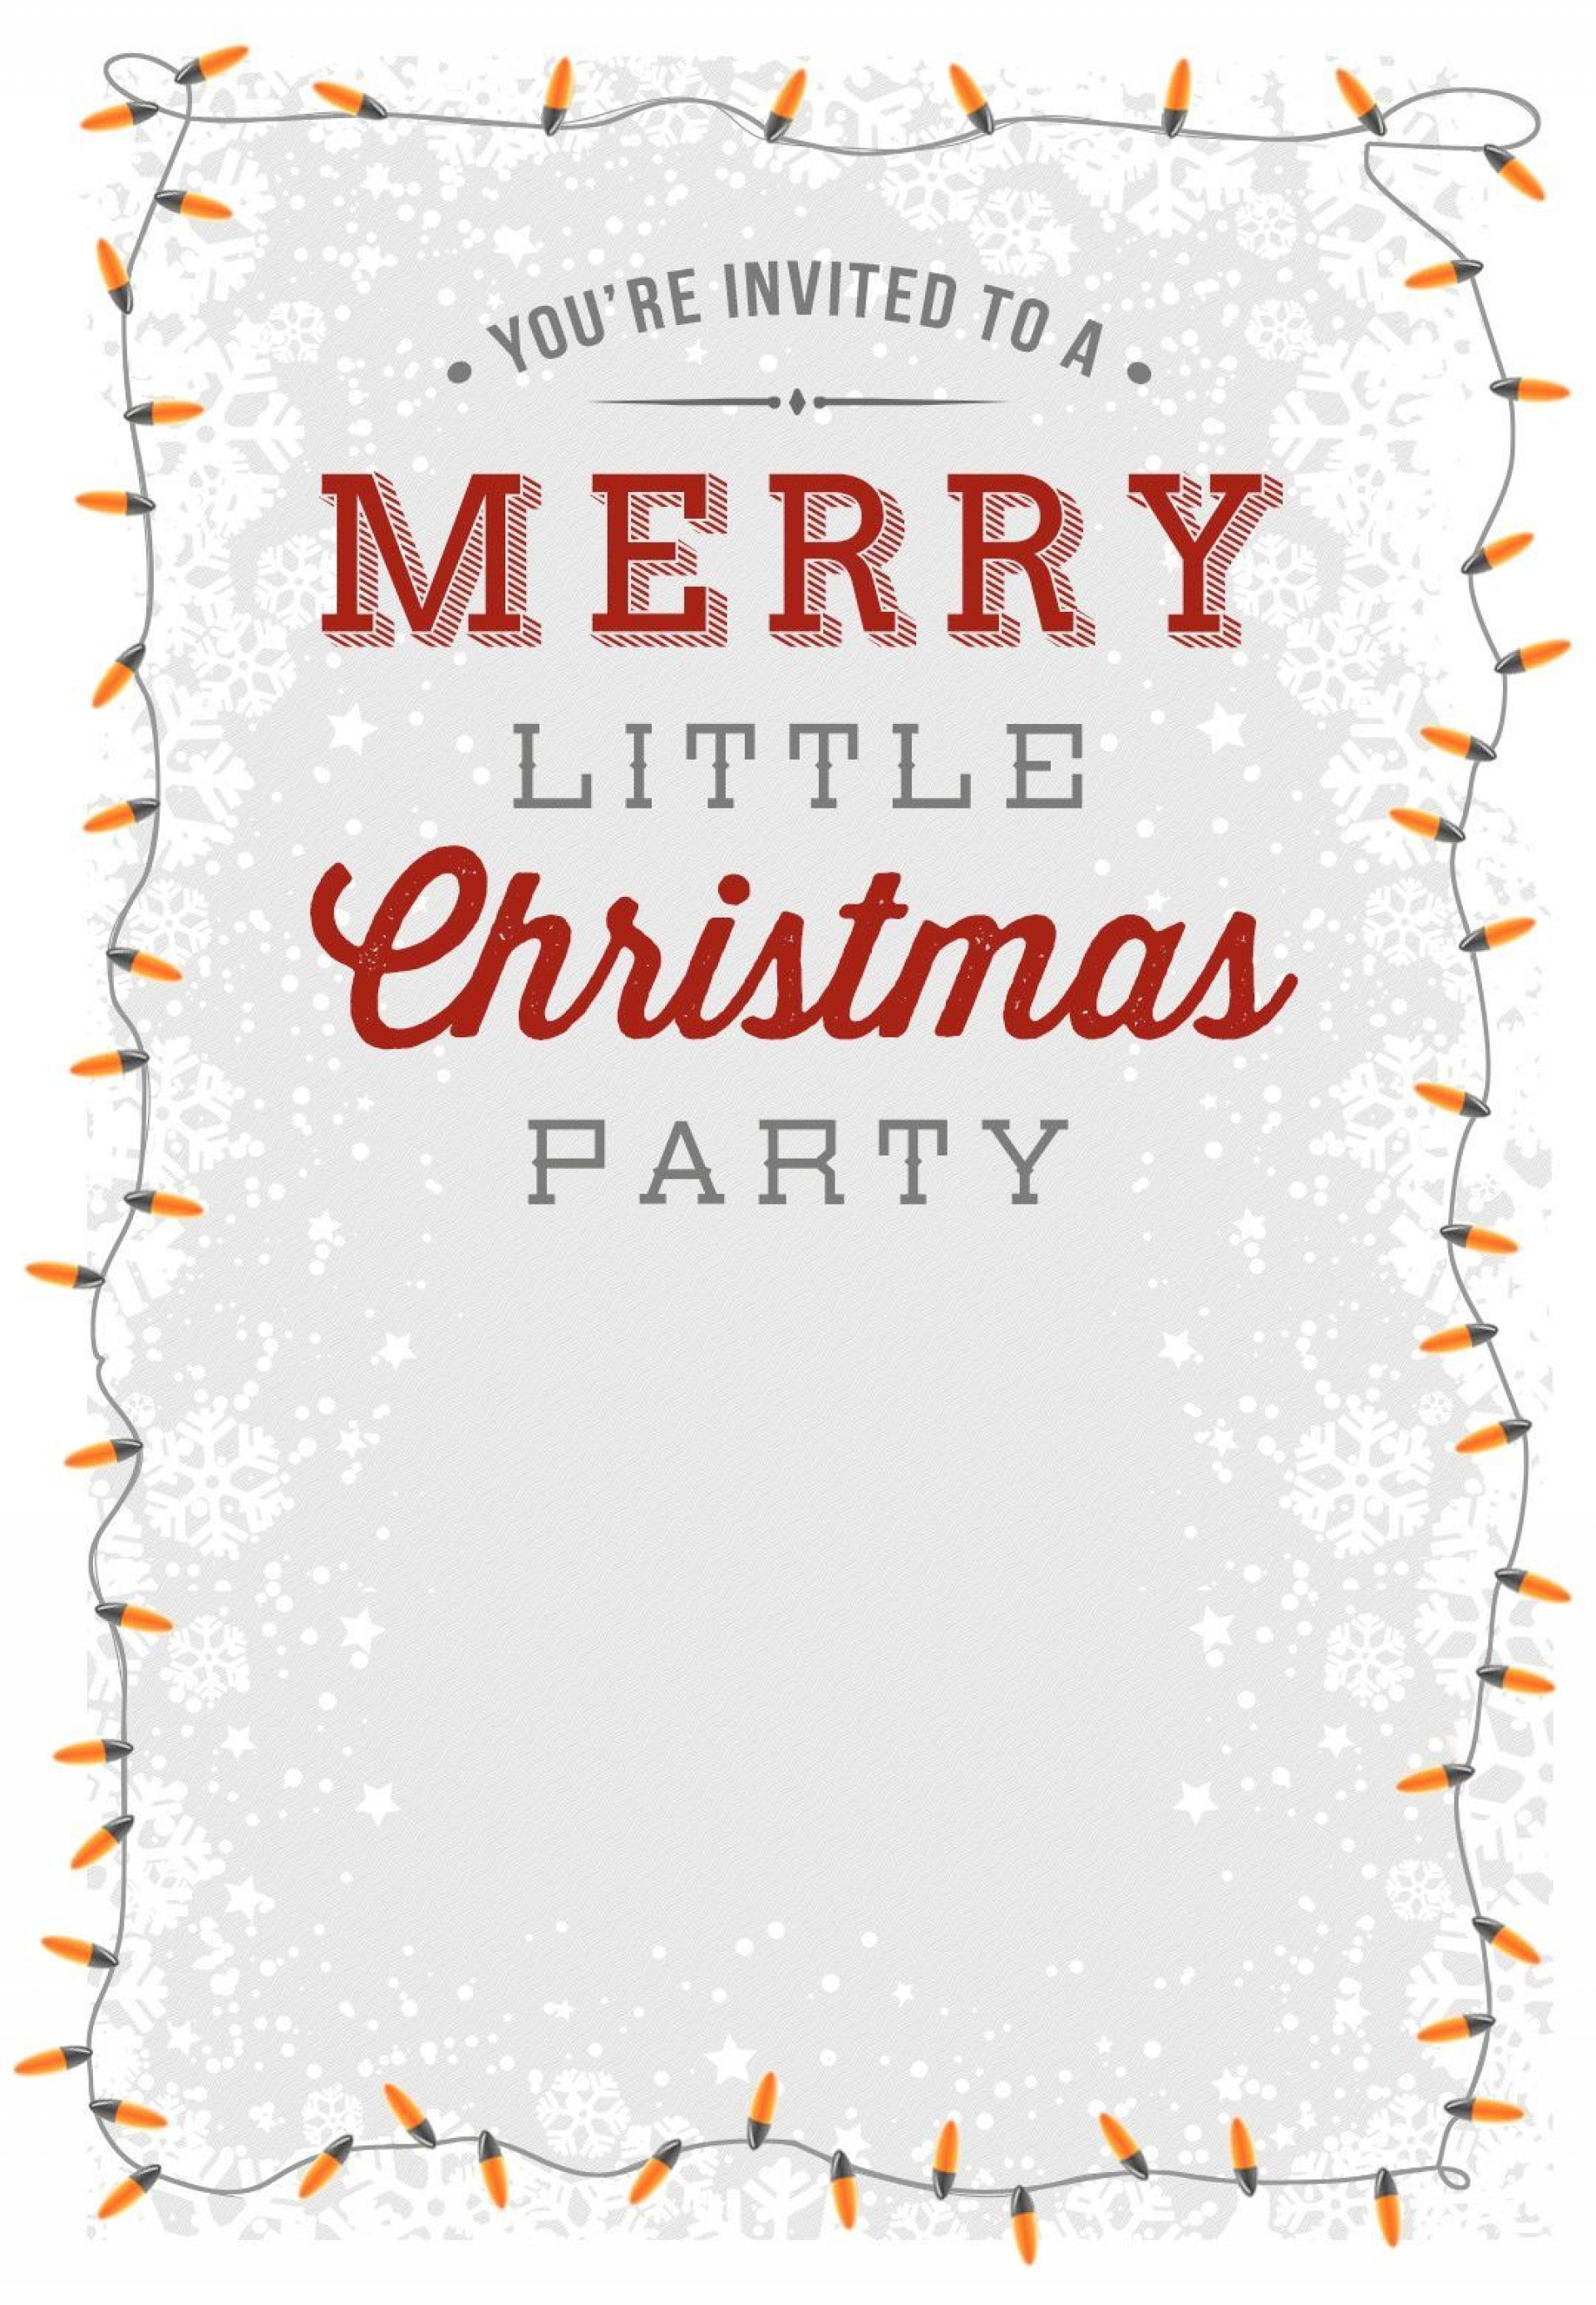 006 Fascinating Christma Party Invitation Template Idea  Holiday Download Free Psd1920